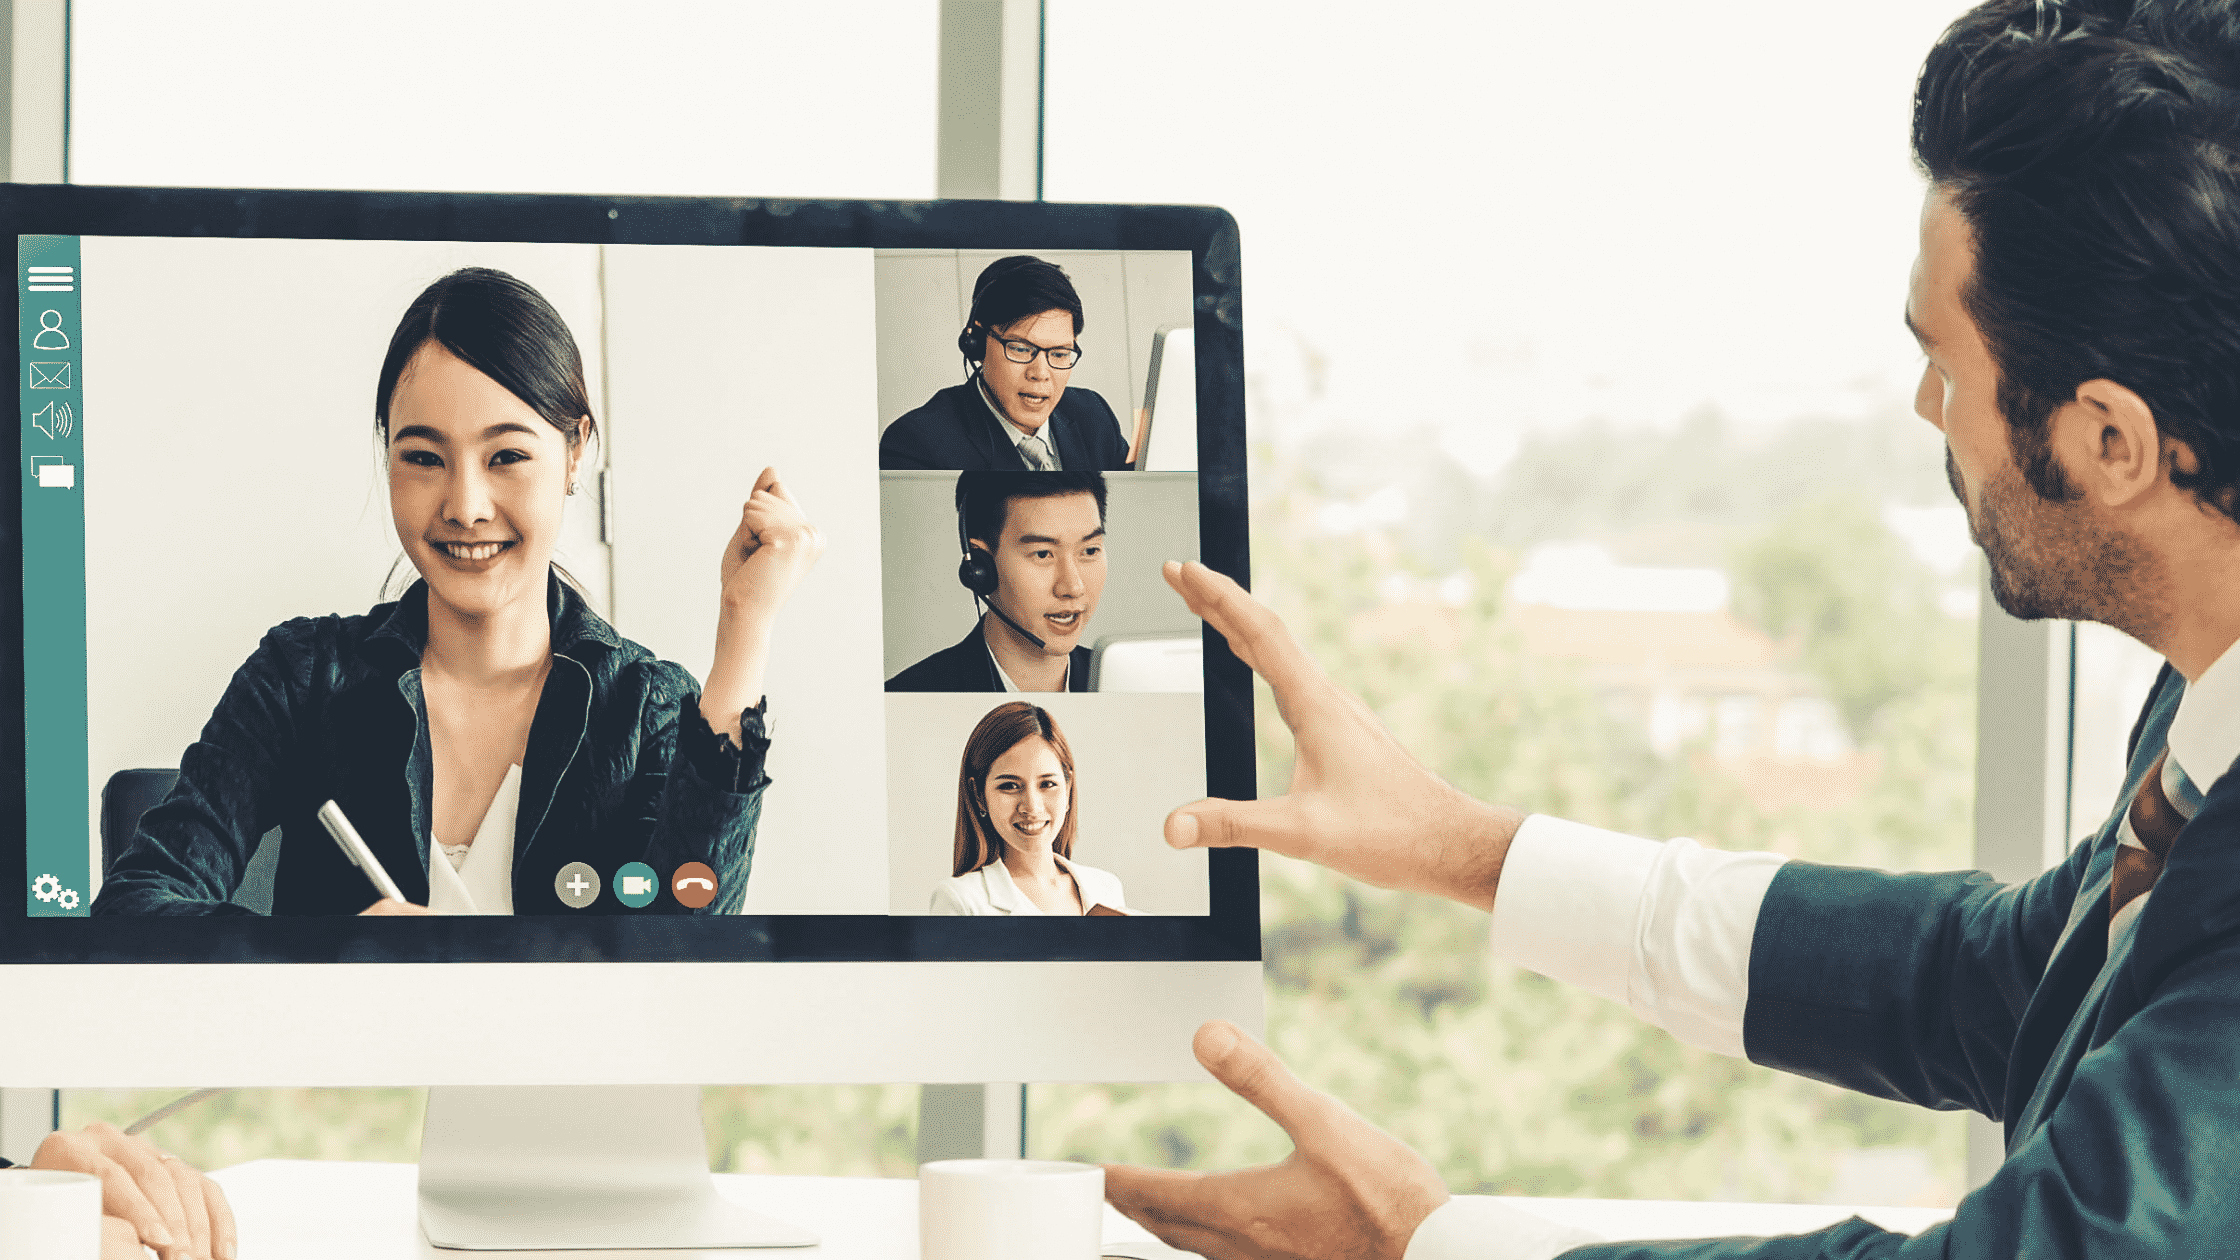 Video Call for your virtual law firm - blog image